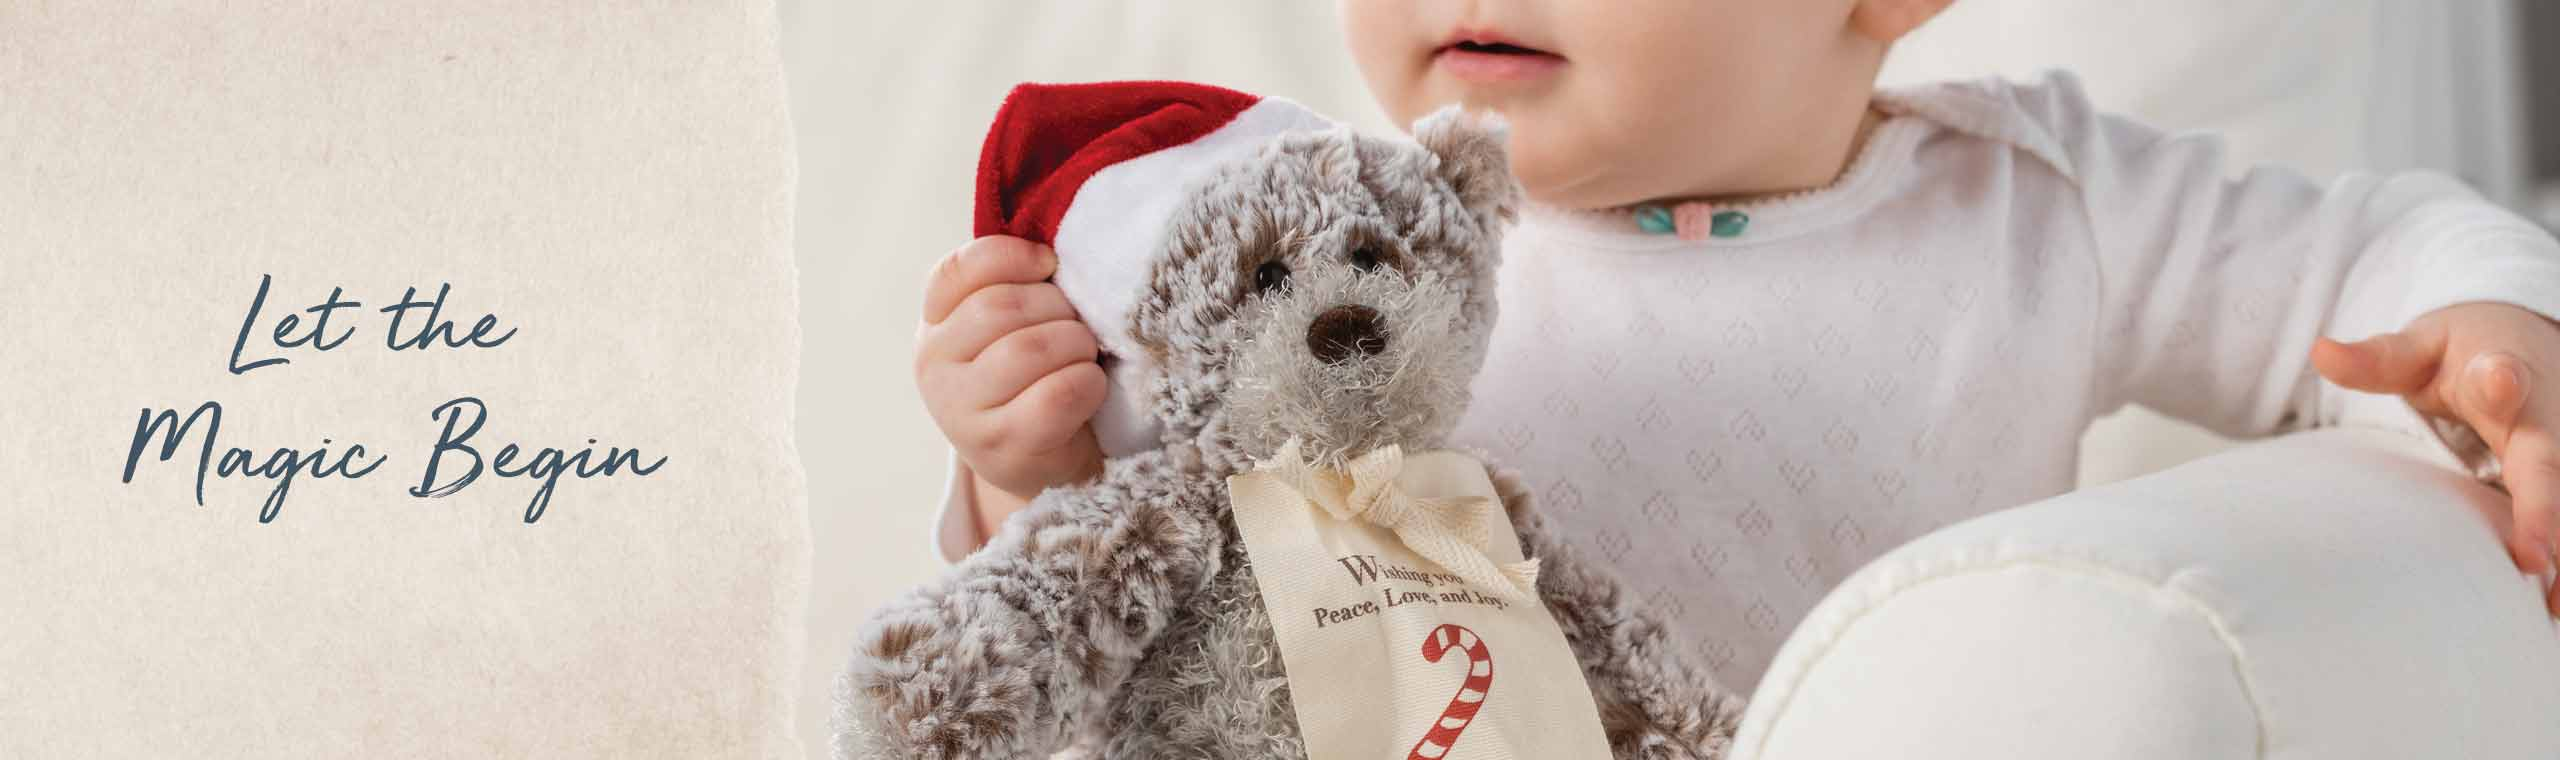 Let the magic begin. Baby hugging a small teddy bear wearing a santa hat.